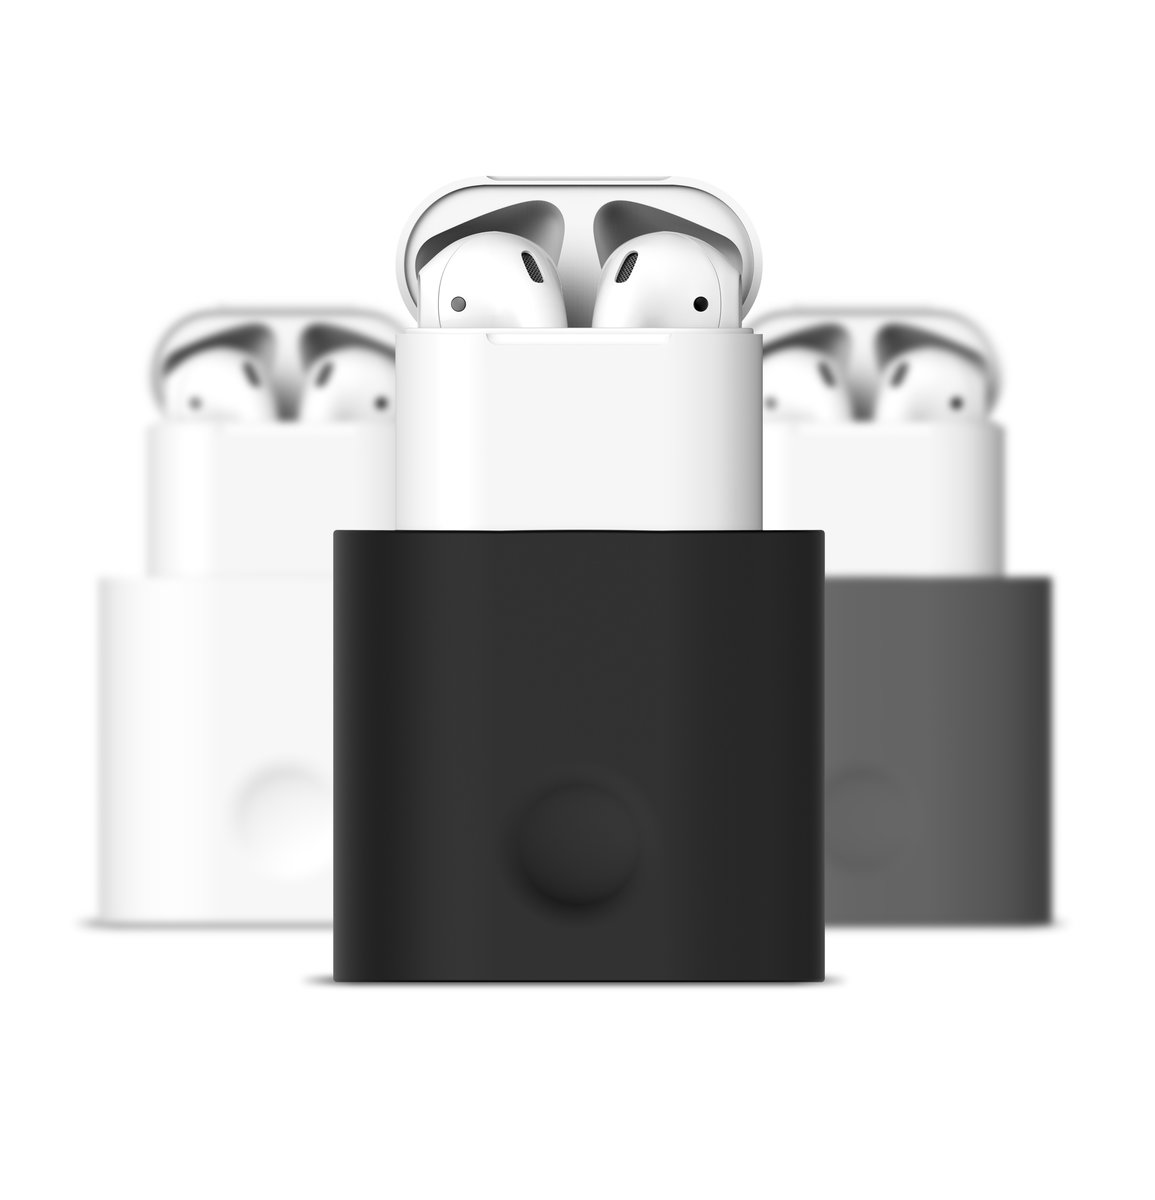 Apple AirPods 1/2 Charging Stand Cable Management Station